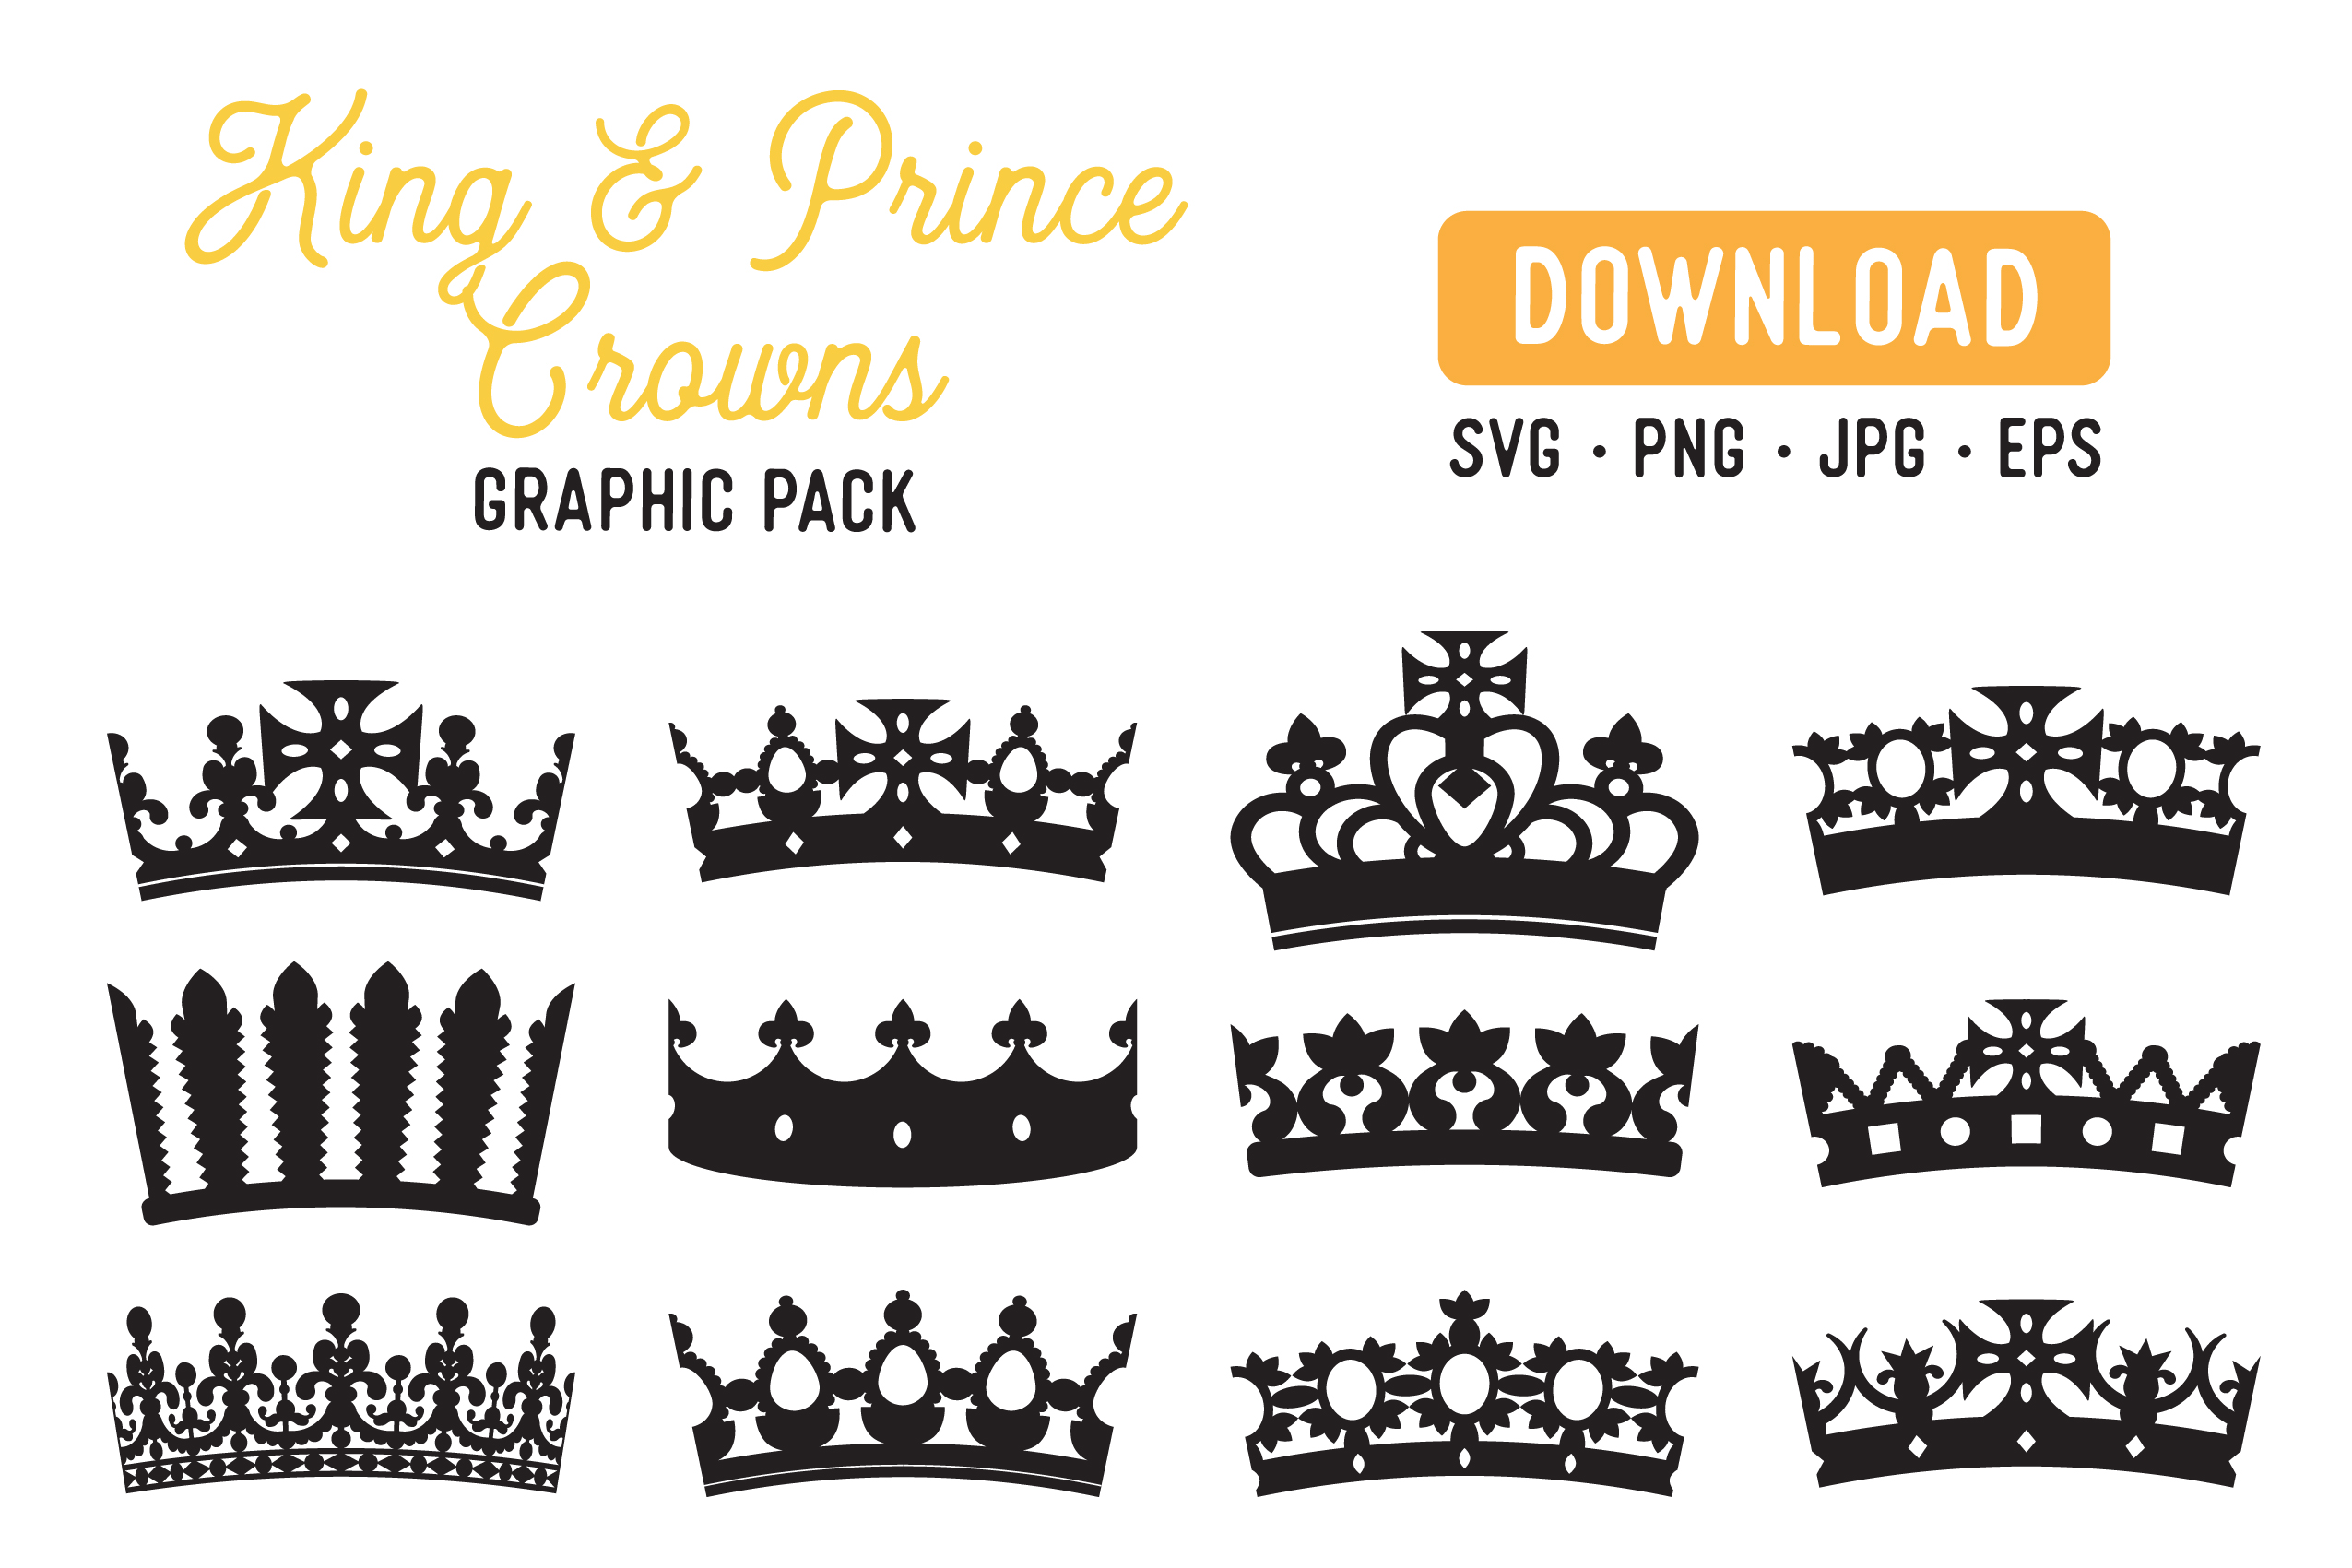 Download Free King Crown Prince Crown Graphic Pack Graphic By The Gradient Fox for Cricut Explore, Silhouette and other cutting machines.